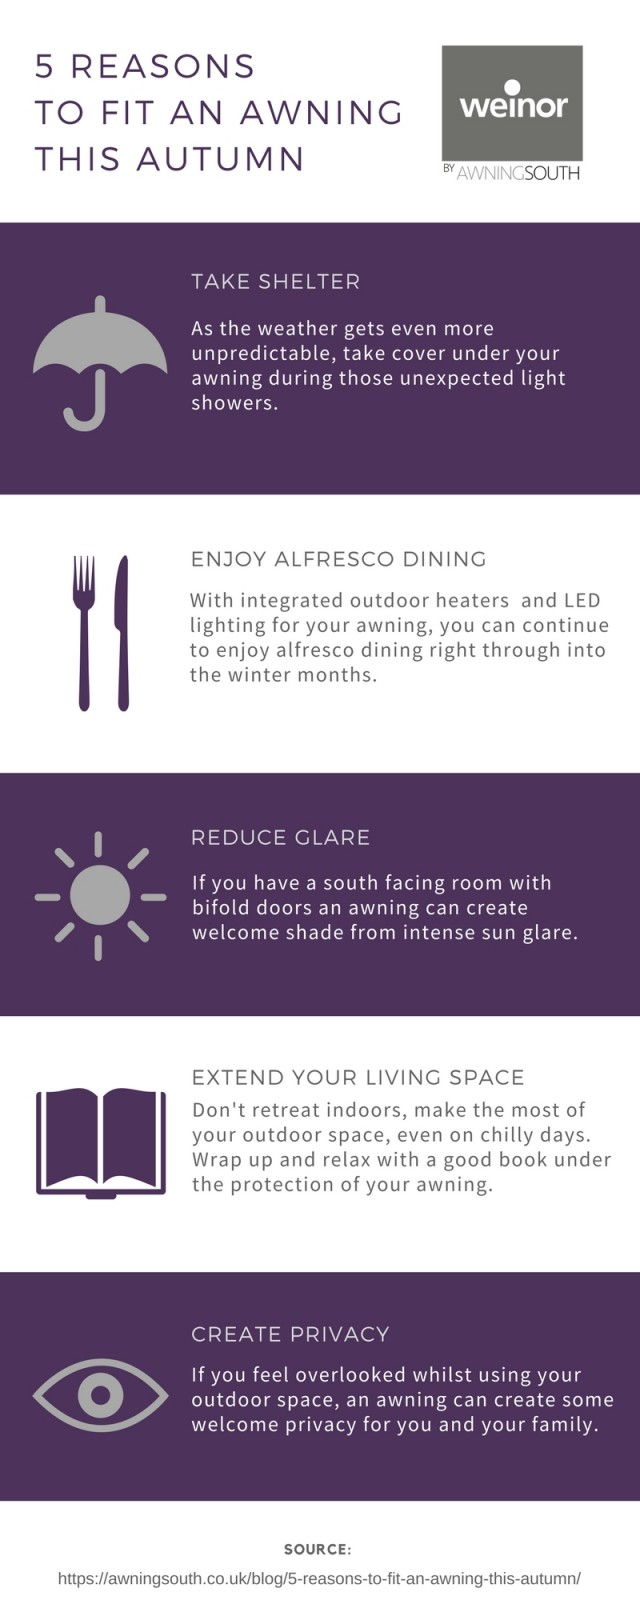 5 Reasons To Fit An Awning This Autumn - Awningsouth